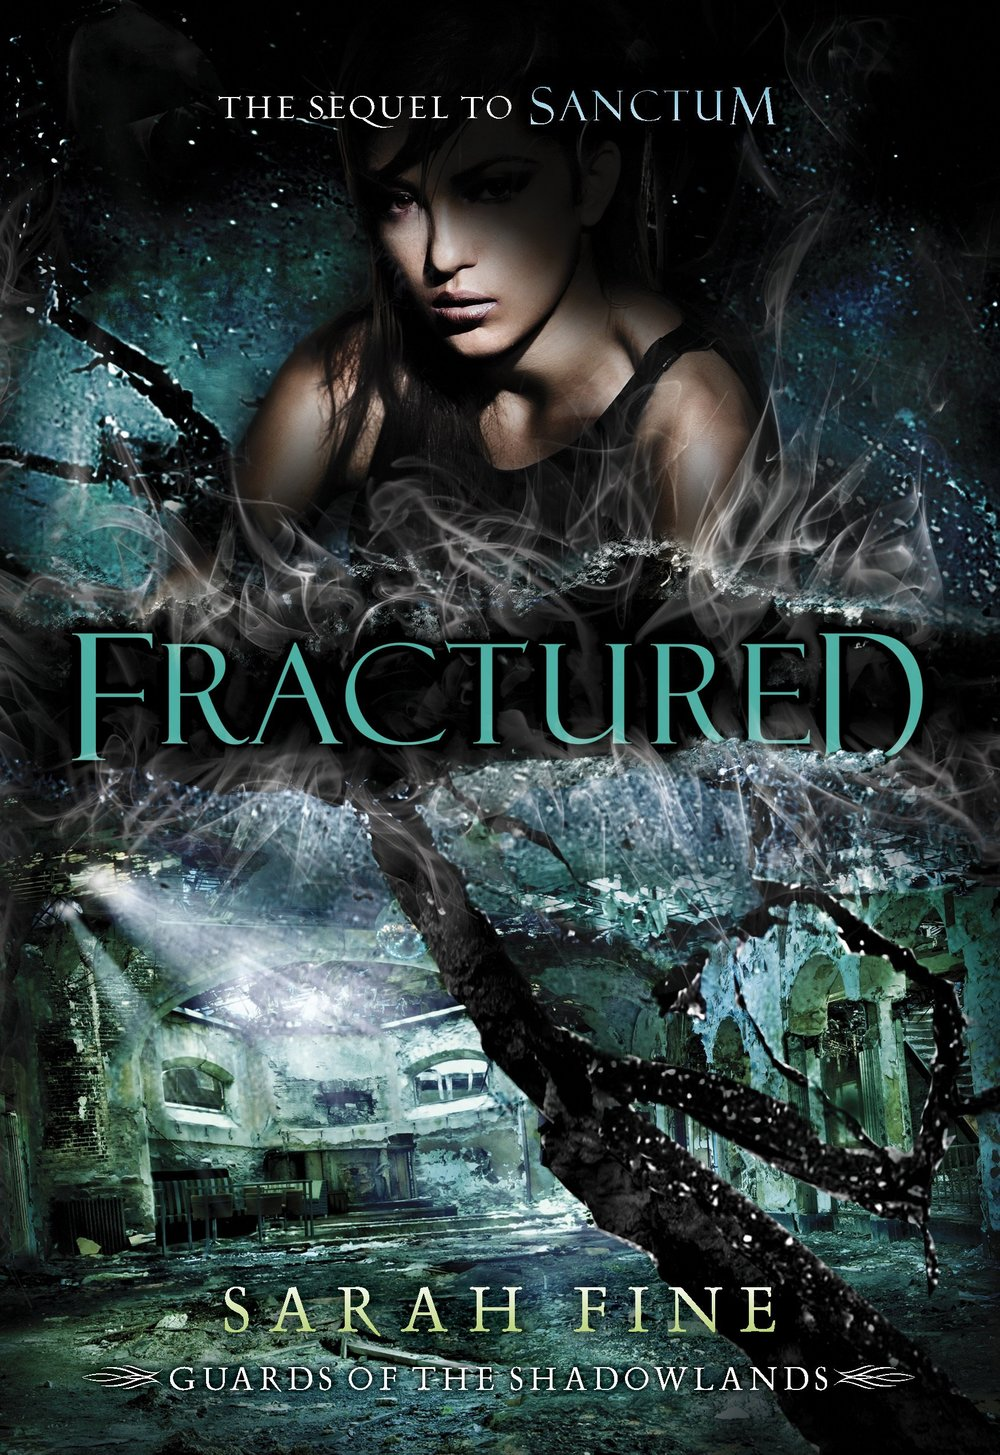 Fractured by Sarah Fine on Clear Eyes, Full Shelves